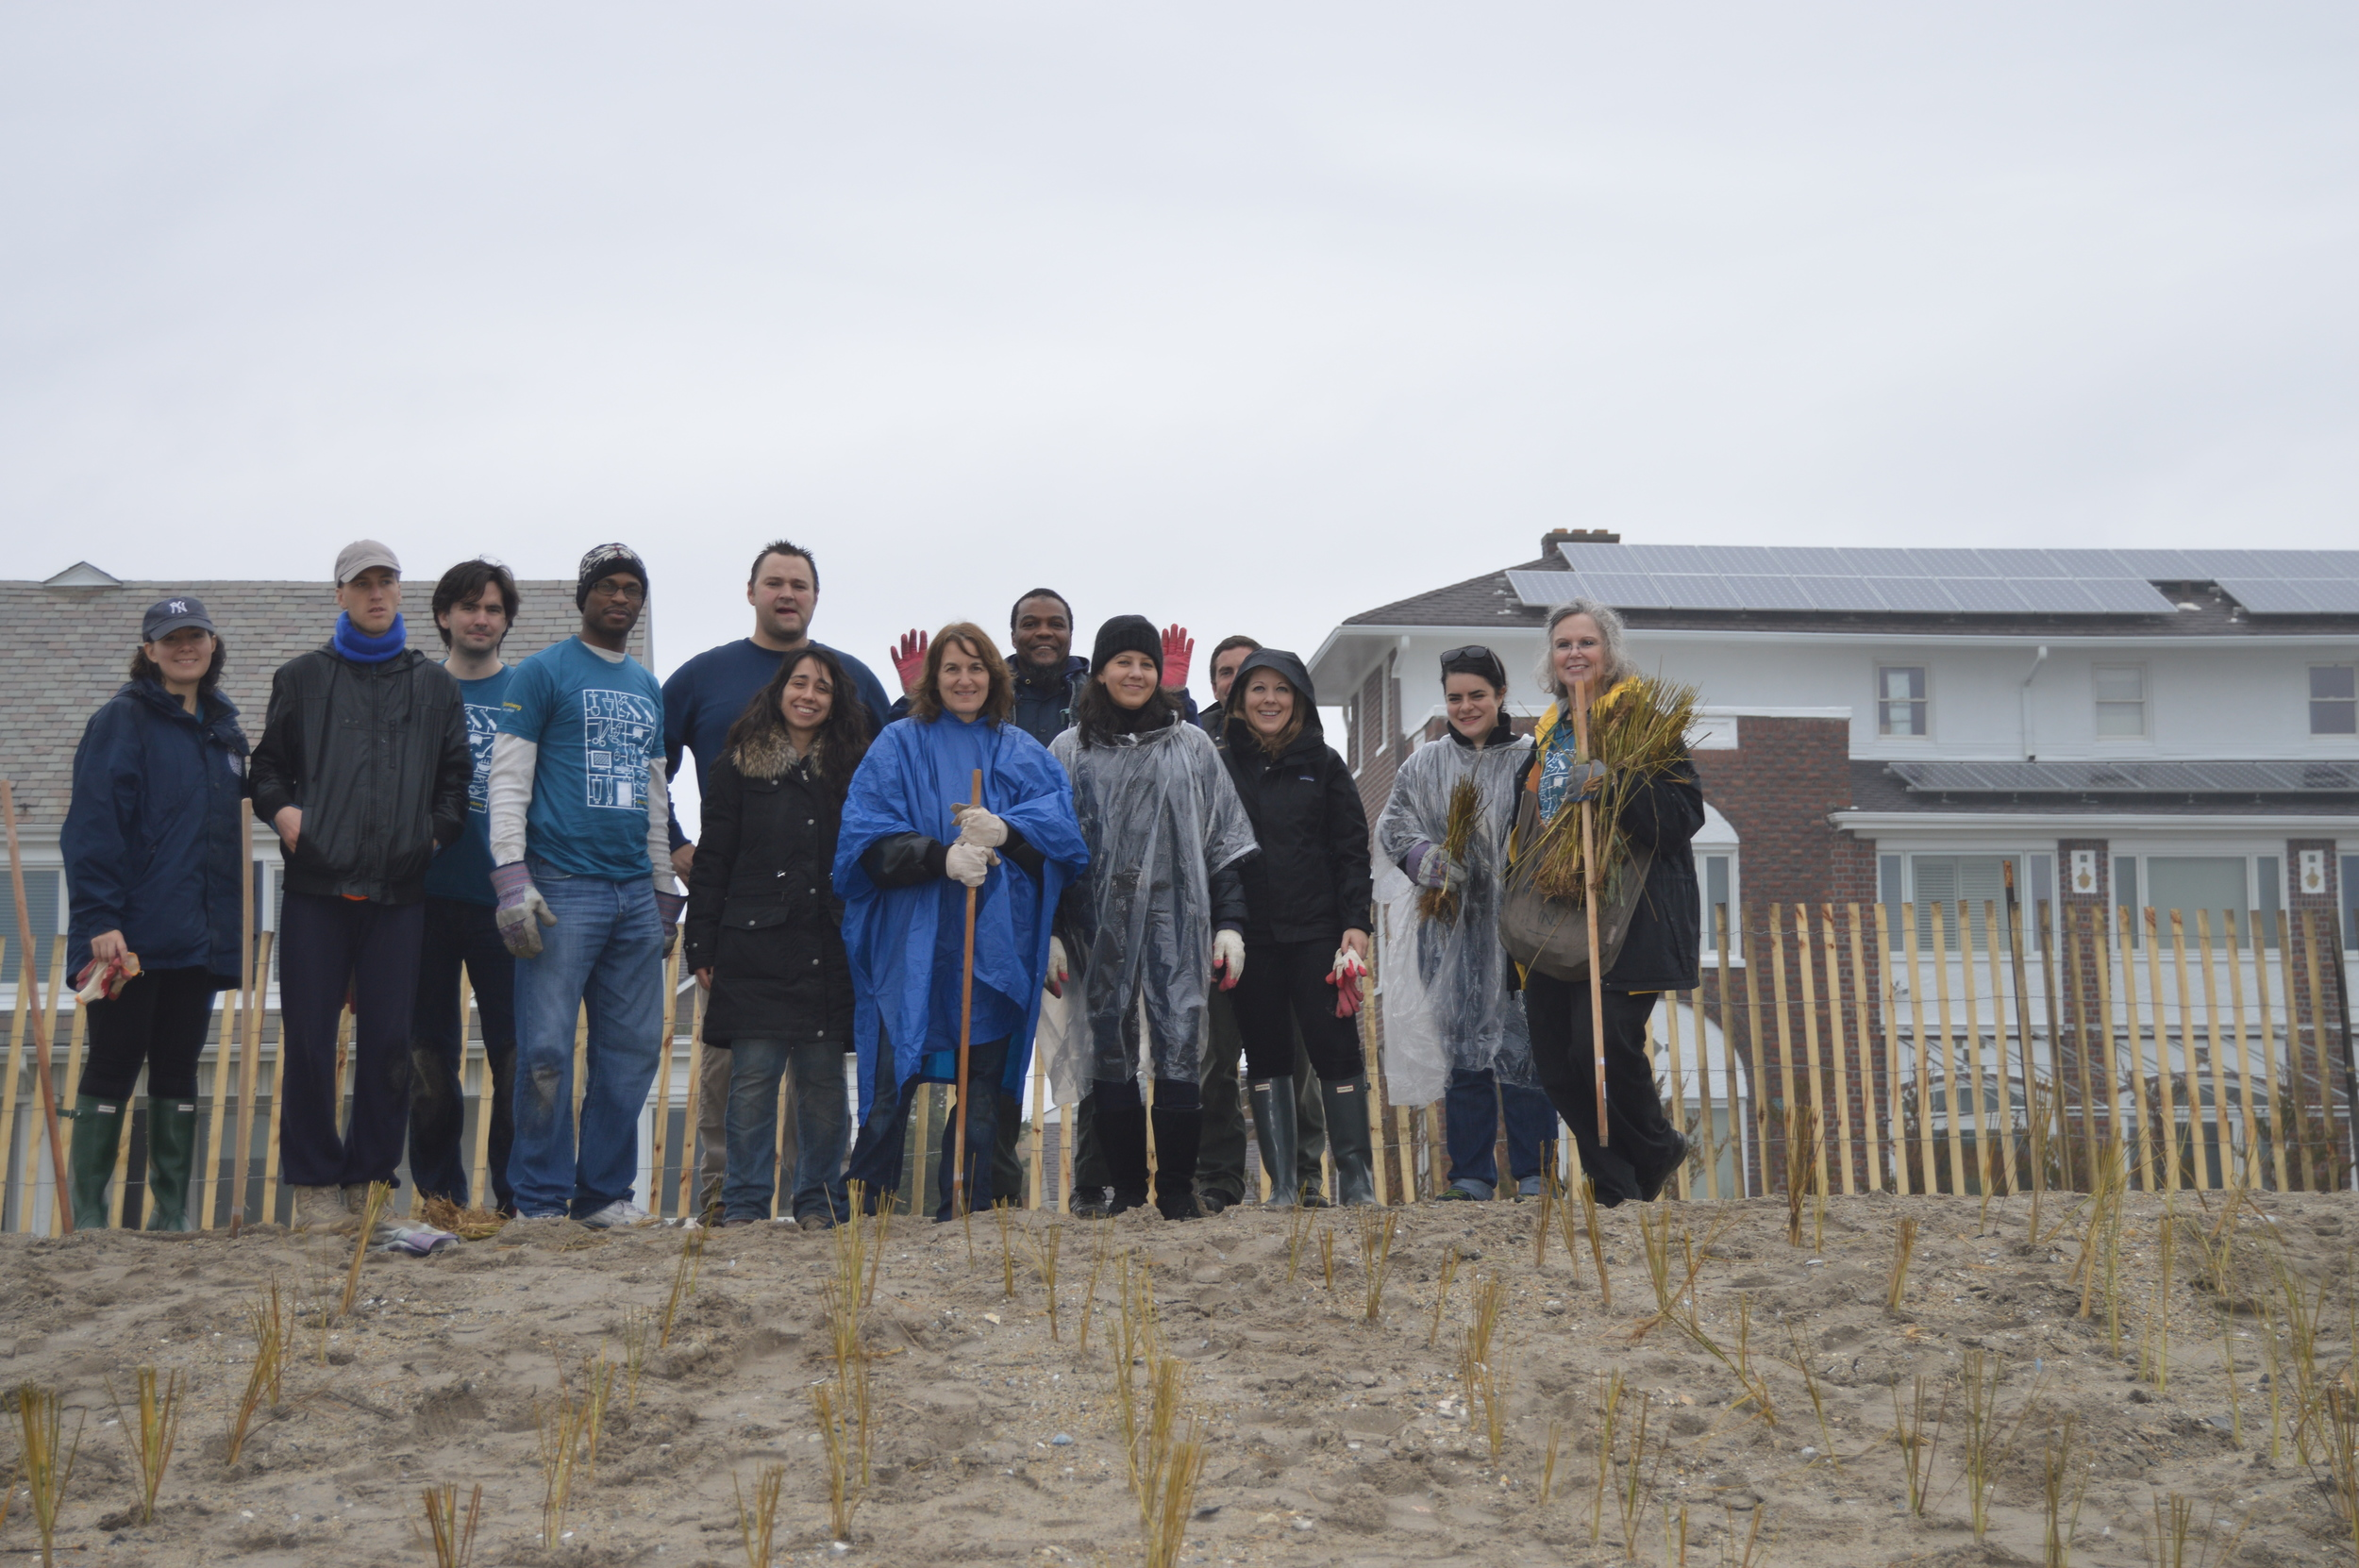 Volunteers help to stabilize the shoreline by planting beach grass on the Rockaway dunes.